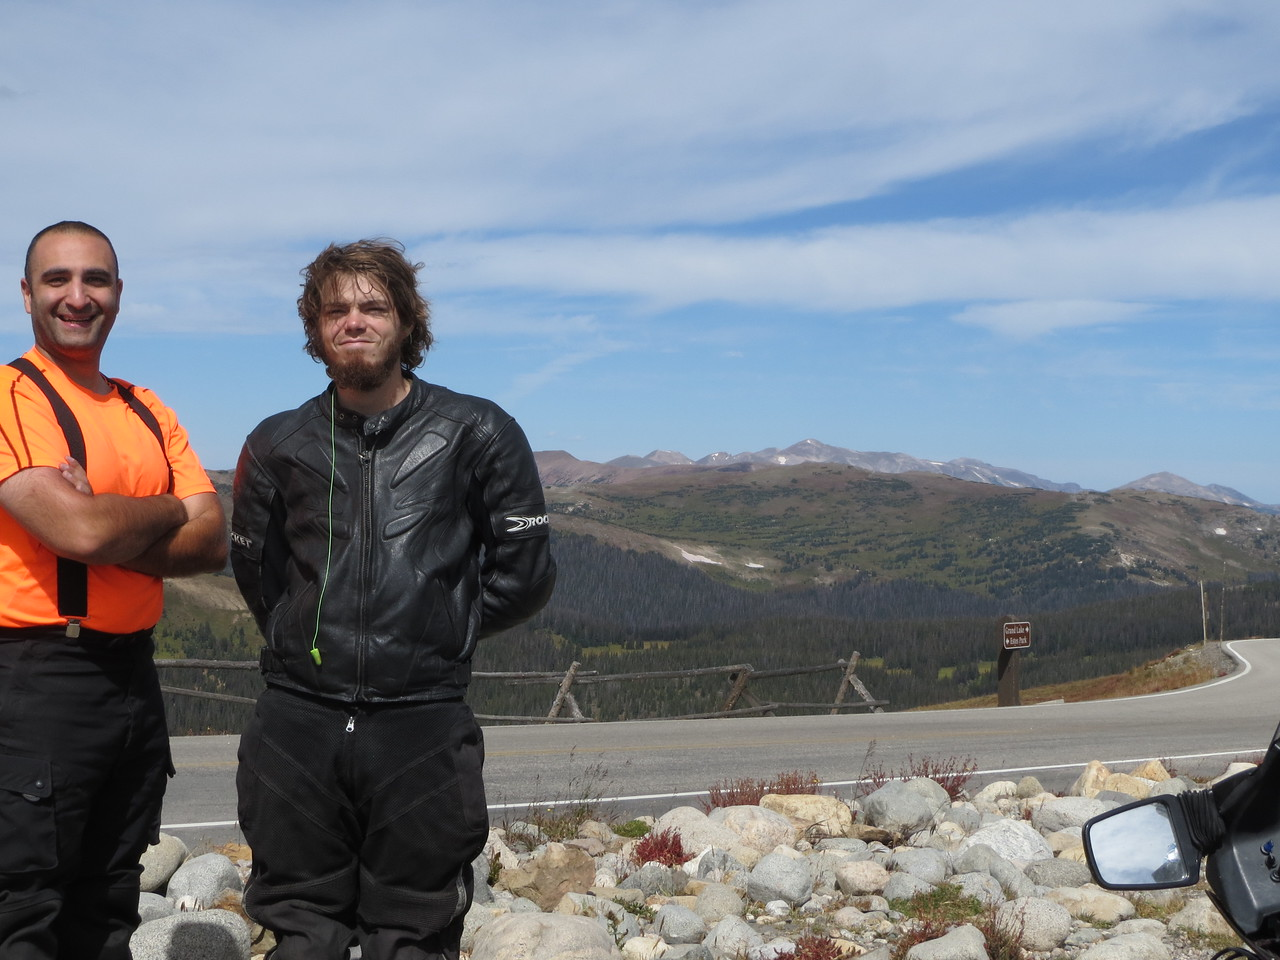 Day 3 (363 miles): Amazingly, this is the only shot of both of us from this entire trip.